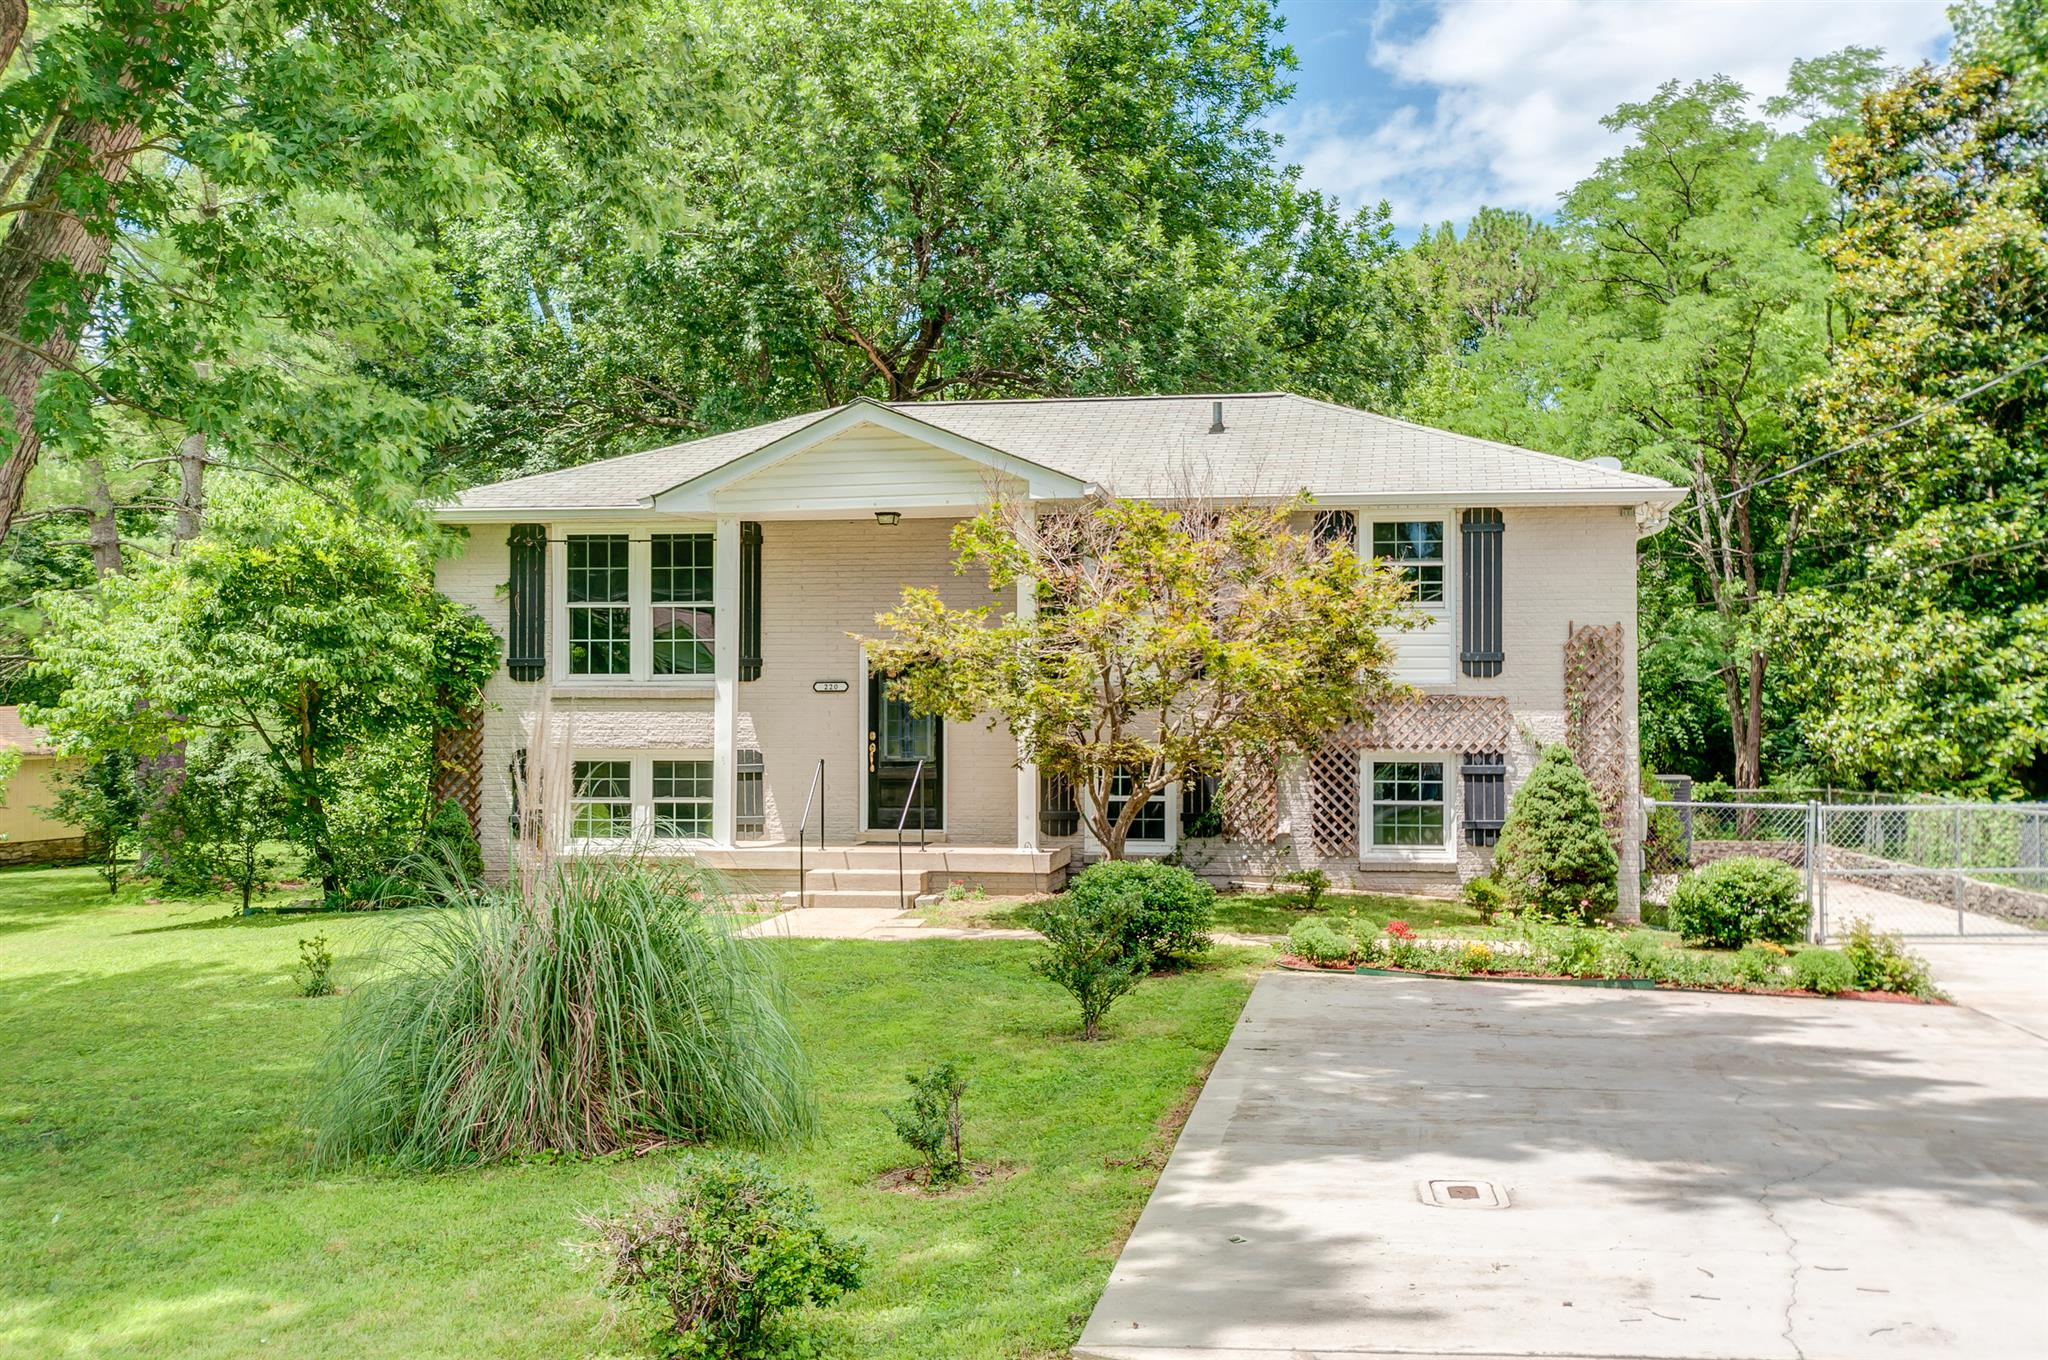 220 Meadowgreen Dr, Franklin, TN 37069